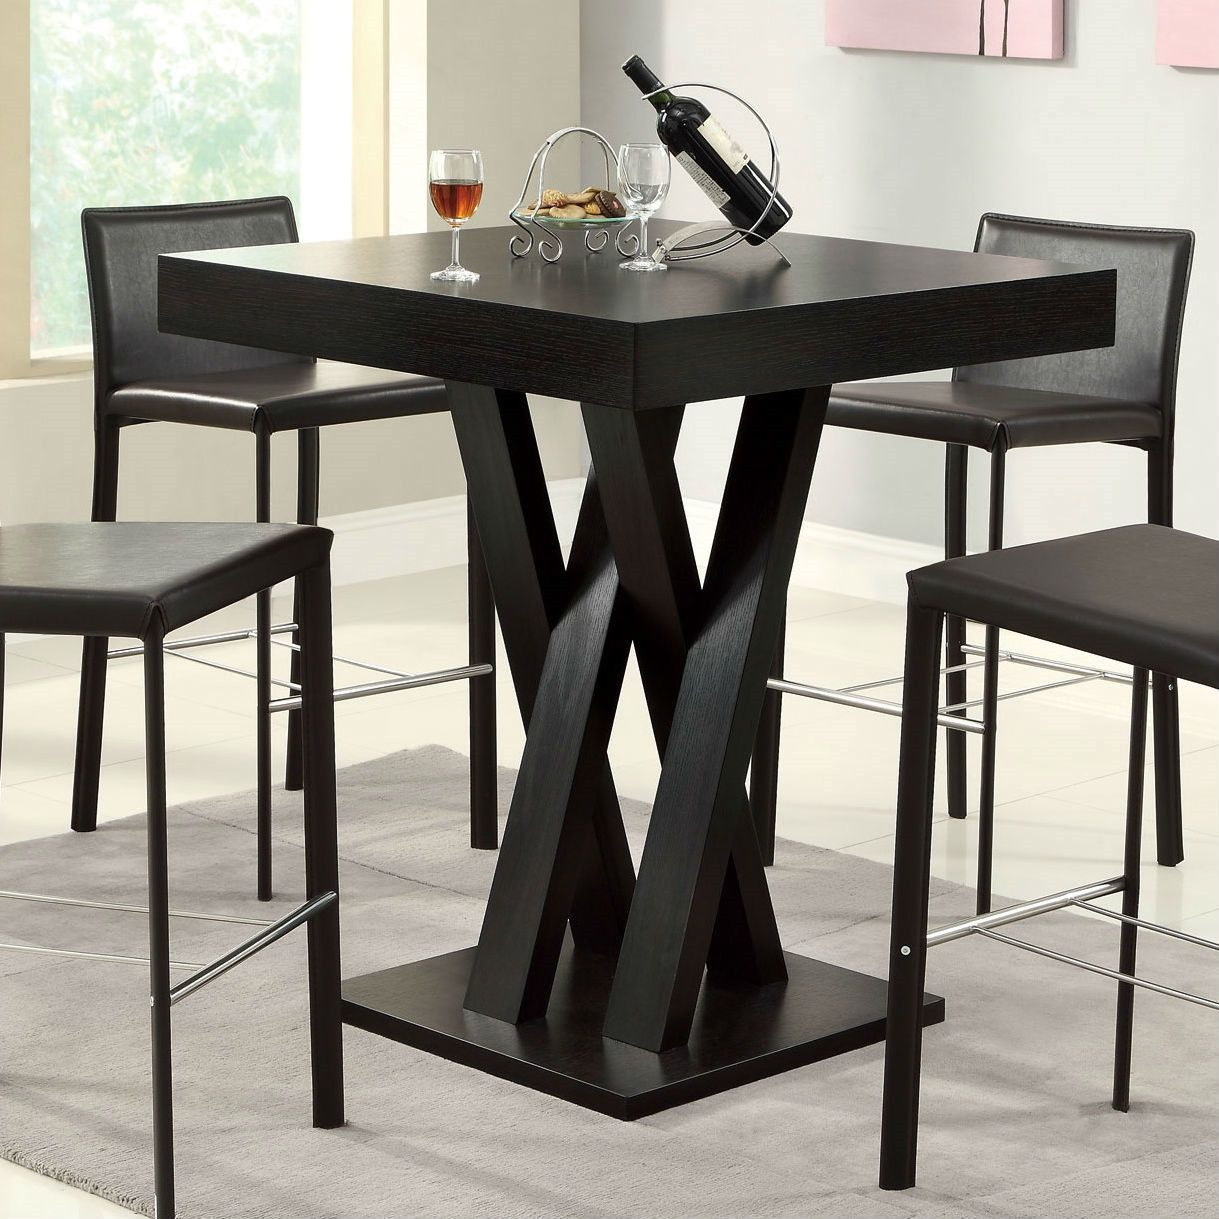 Modern 40 Inch High Square Dining Table In Dark Cuccino Finish